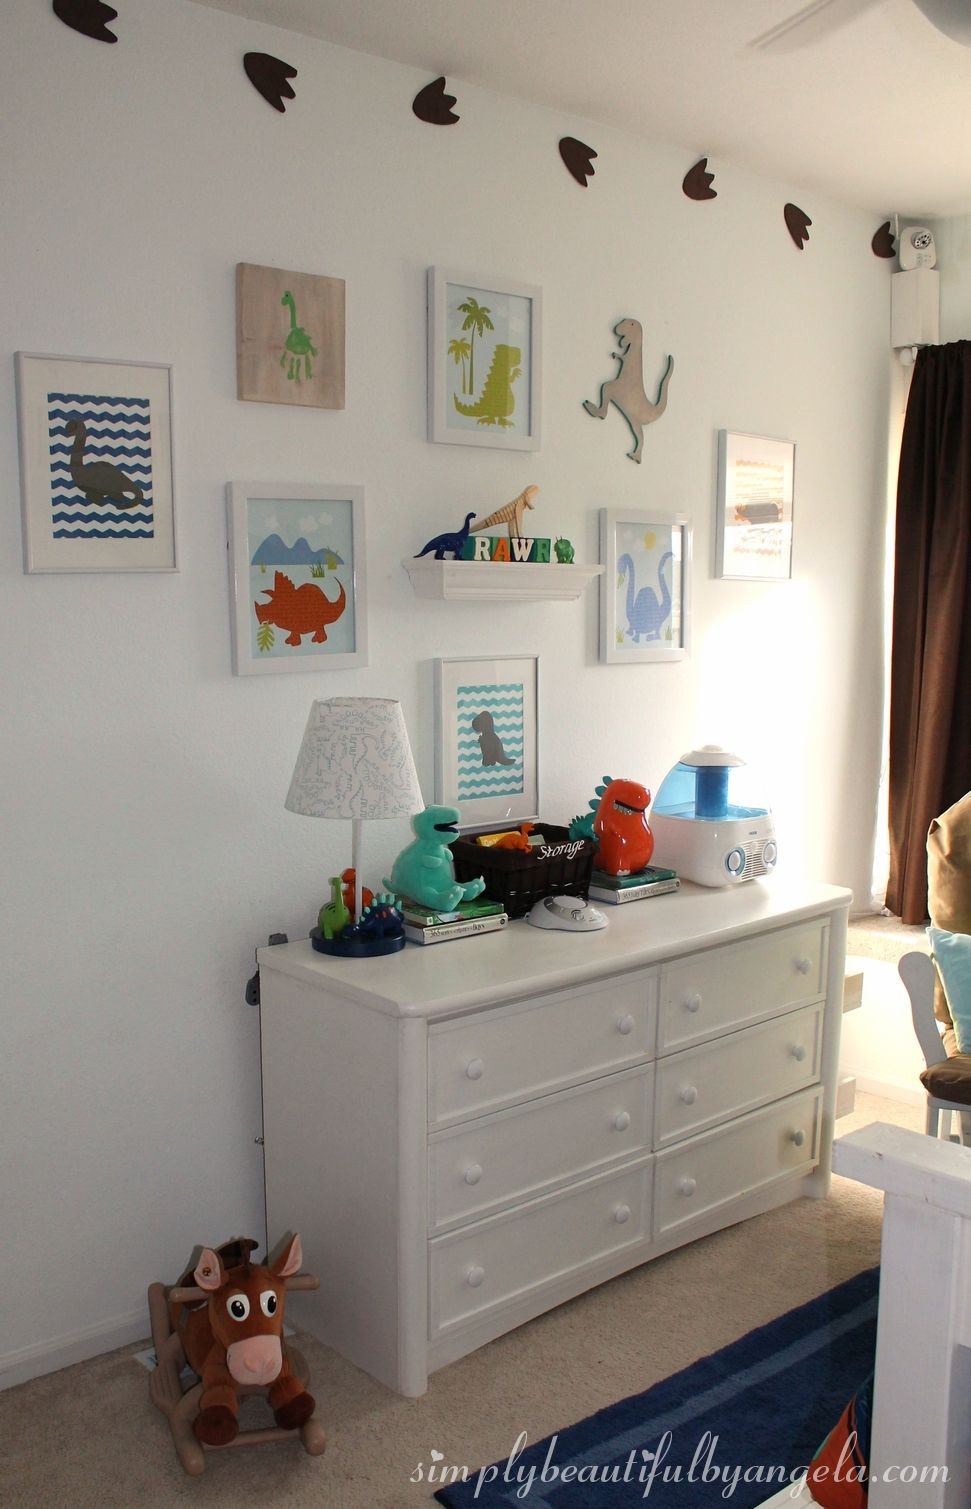 From Junk Room To Beautiful Bedroom The Big Reveal: Tristan's Big Boy Dinosaur Room Reveal